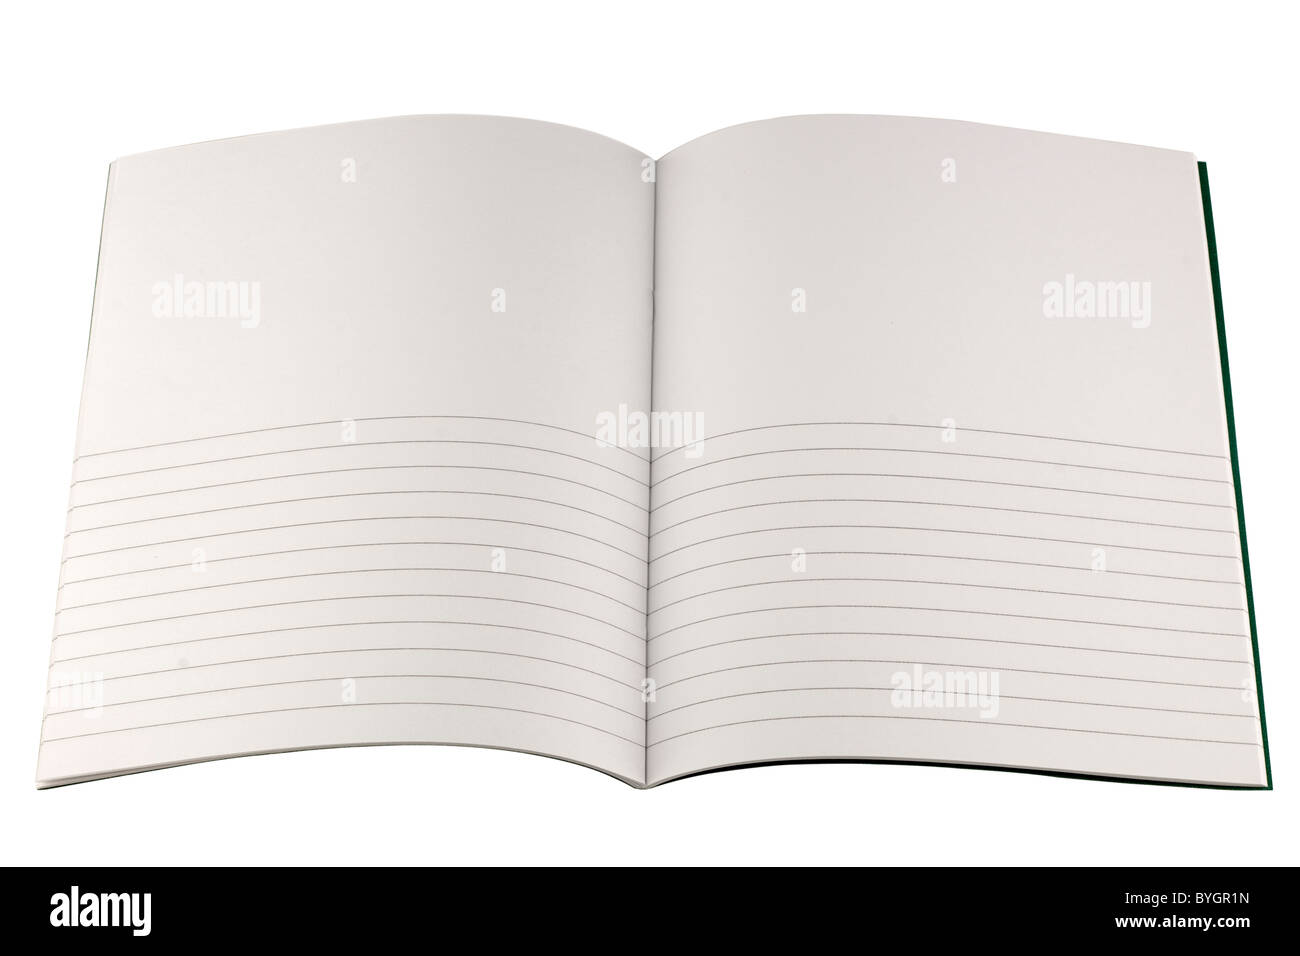 Half lined and half plain writing book - Stock Image